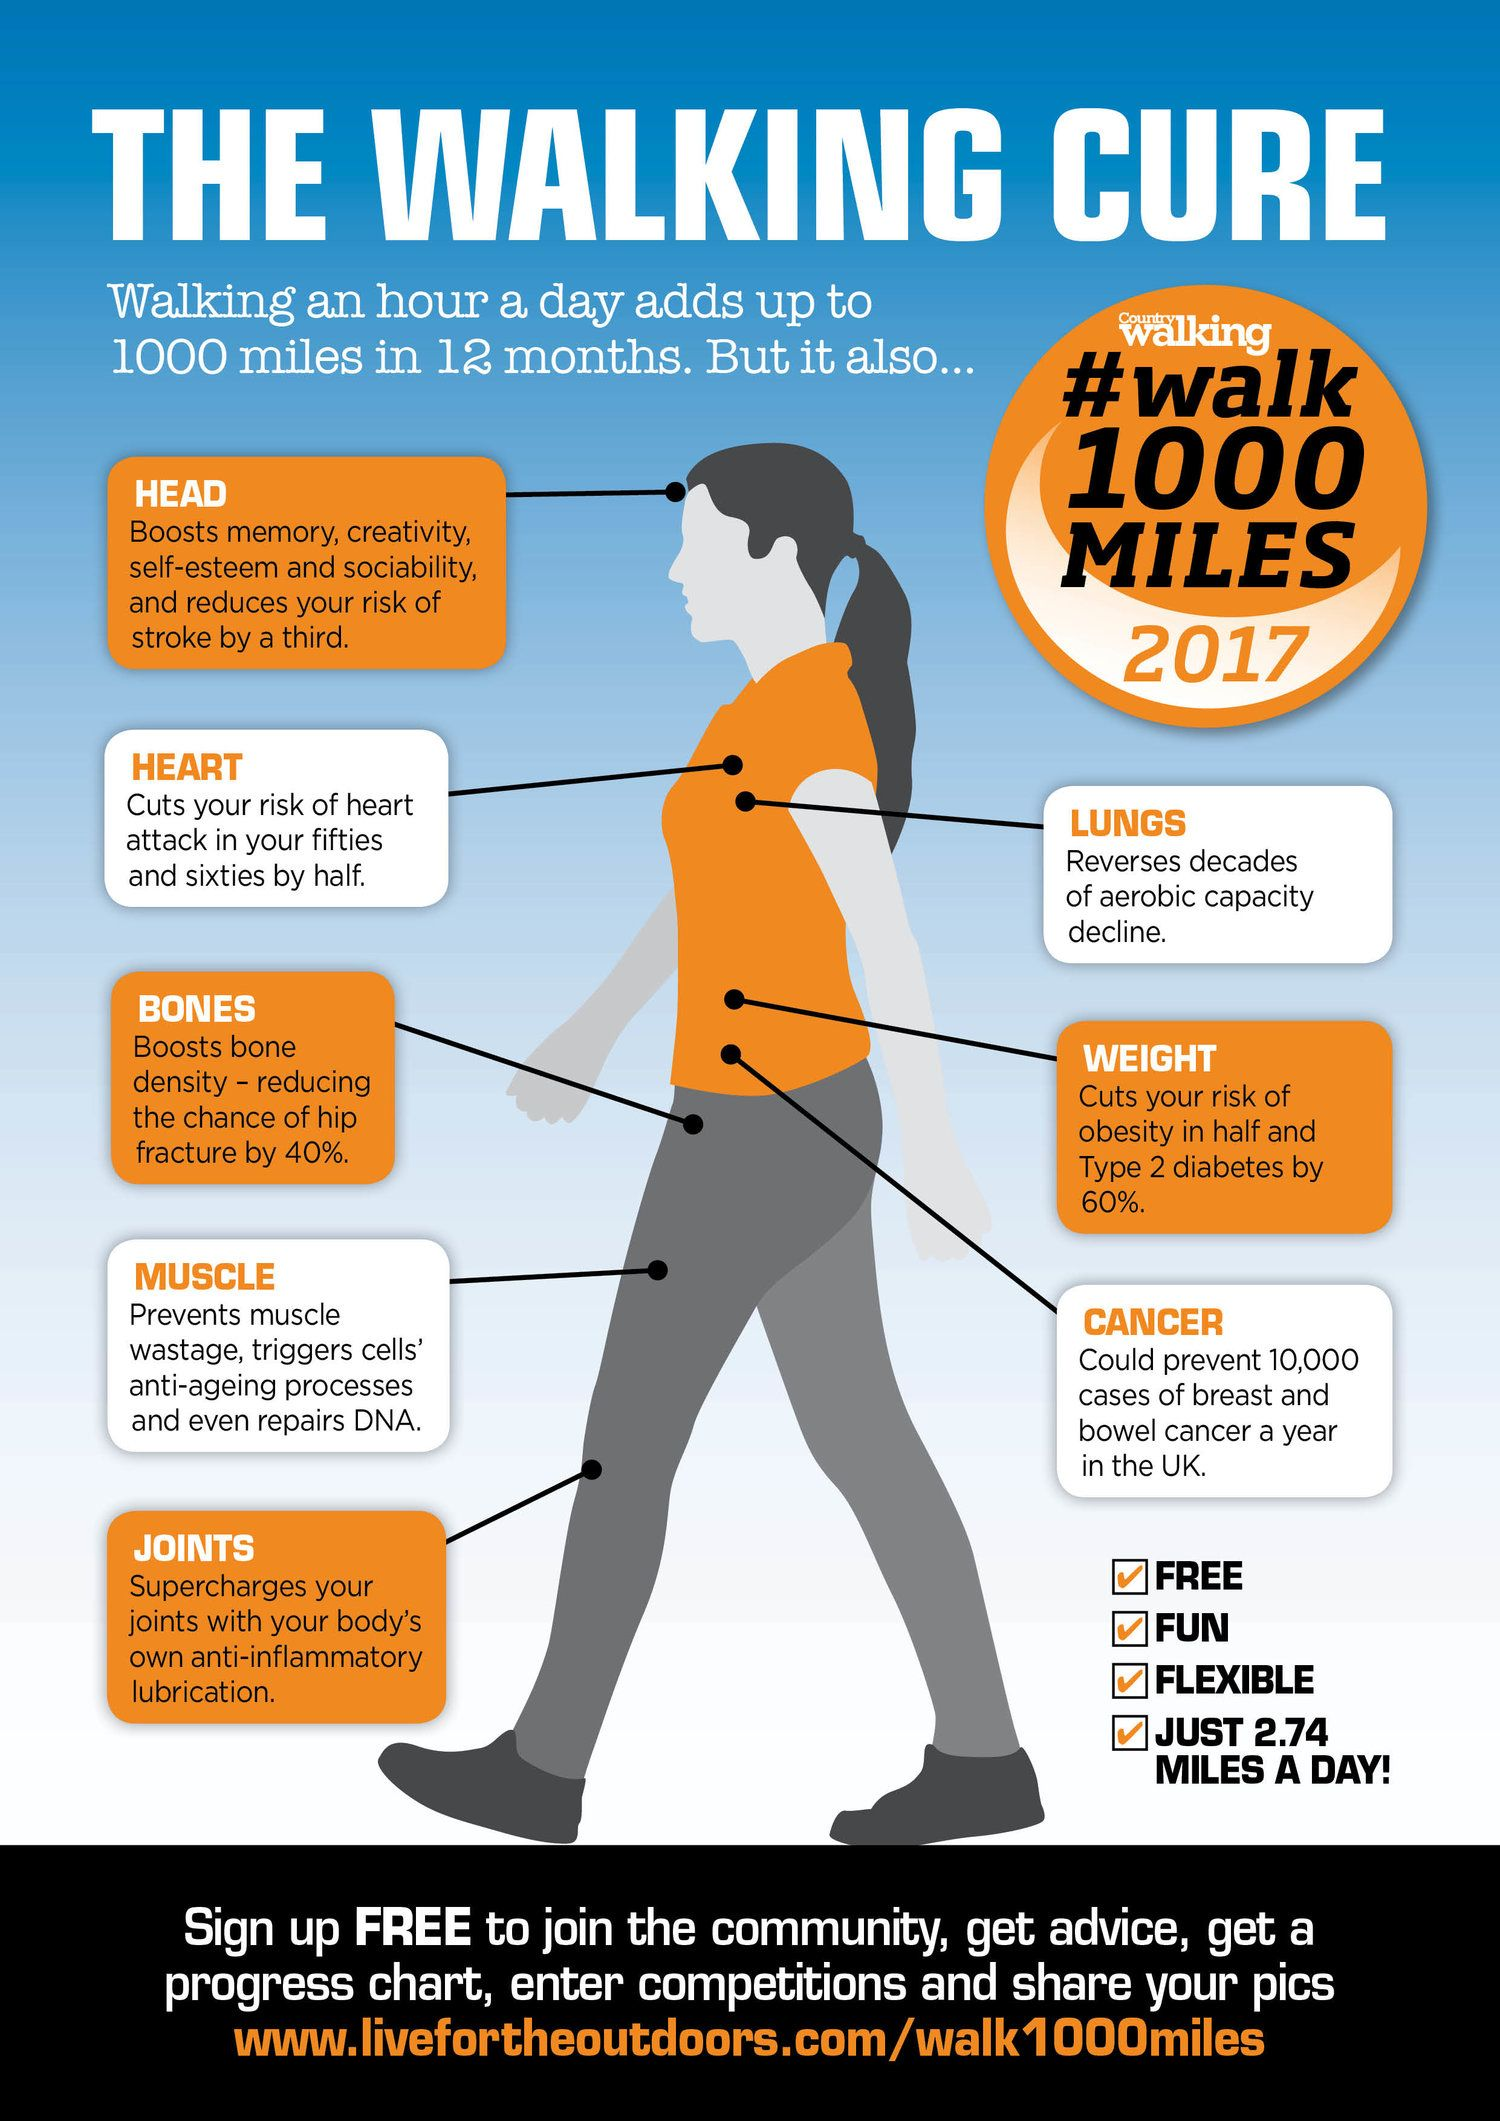 How many miles to walk daily